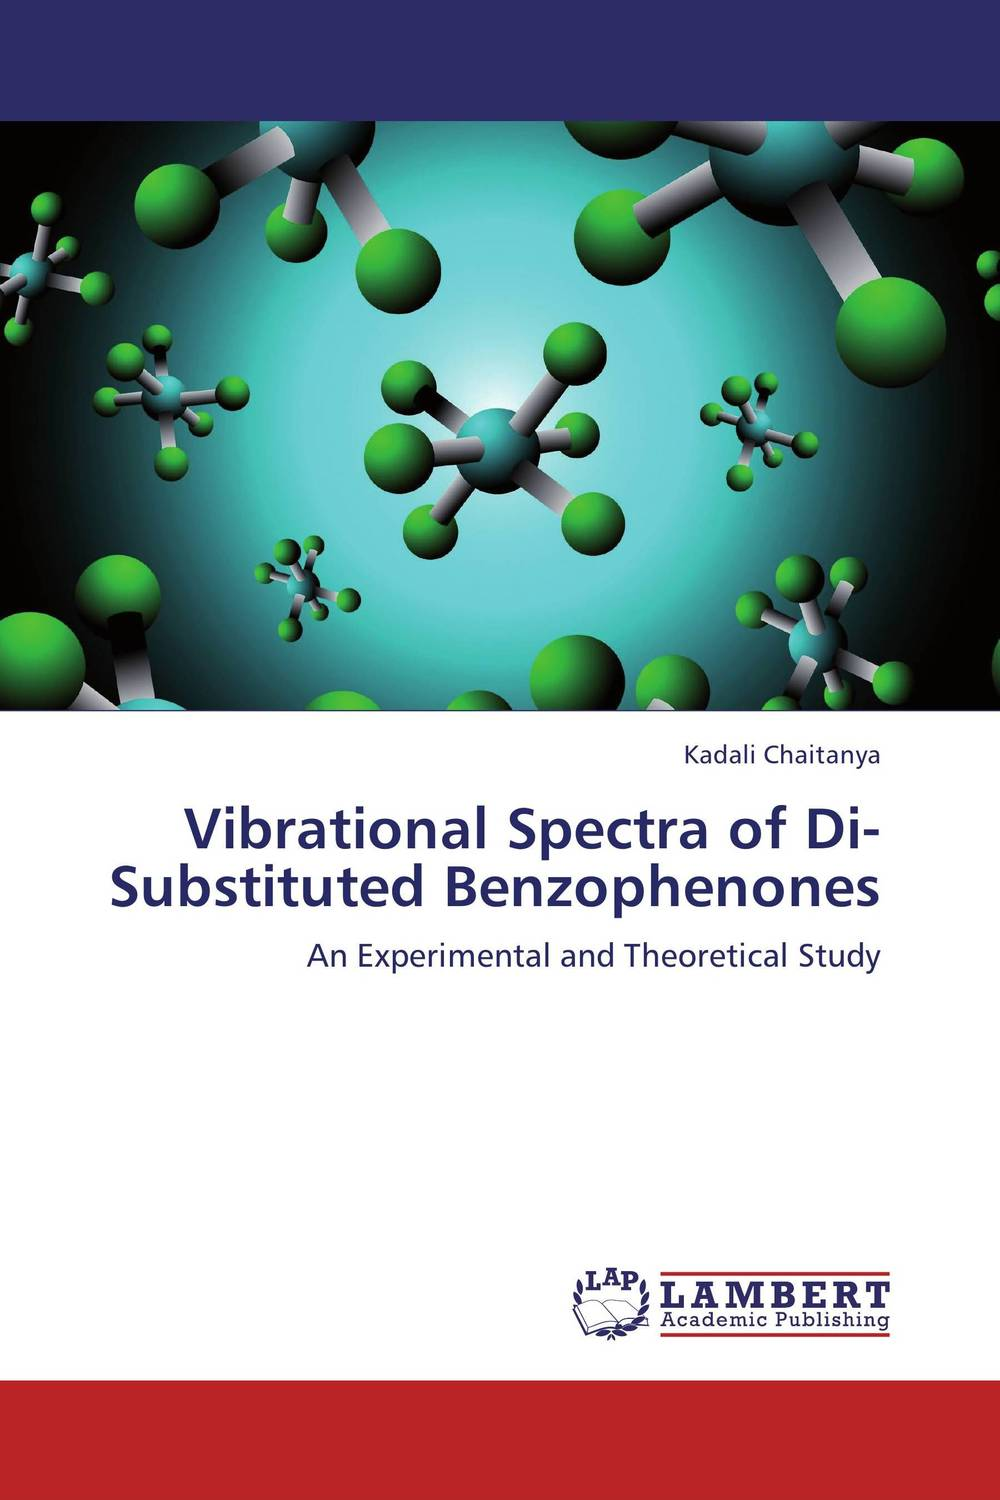 Vibrational Spectra of Di-Substituted Benzophenones ashish nautiyal and trilok chandra upadhyay vibrational pseudospin solutions of doped triglycine sulphate crystal